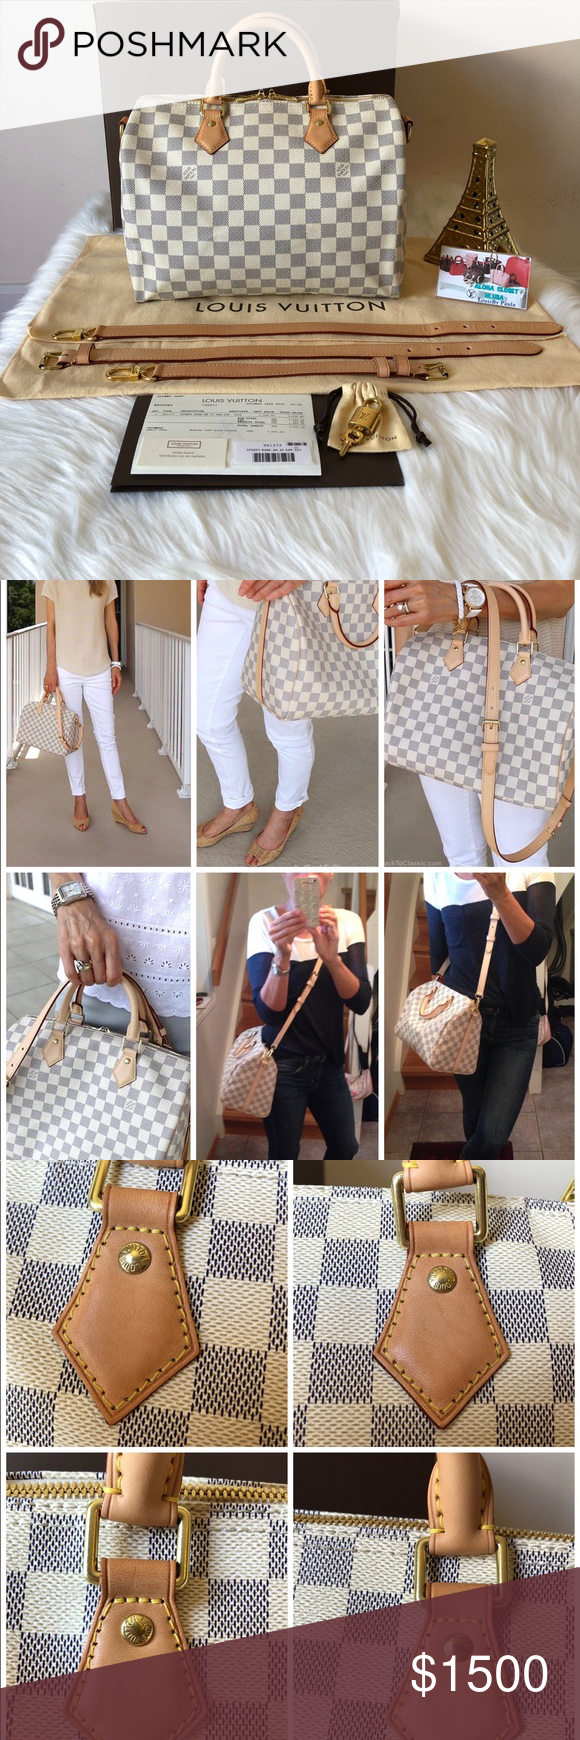 fbb3294498b4 Preloved Authentic LV Speedy30 Ban Damier Azur Bag Selling Preloved an  authentic Beautiful Louis Vuitton Speedy